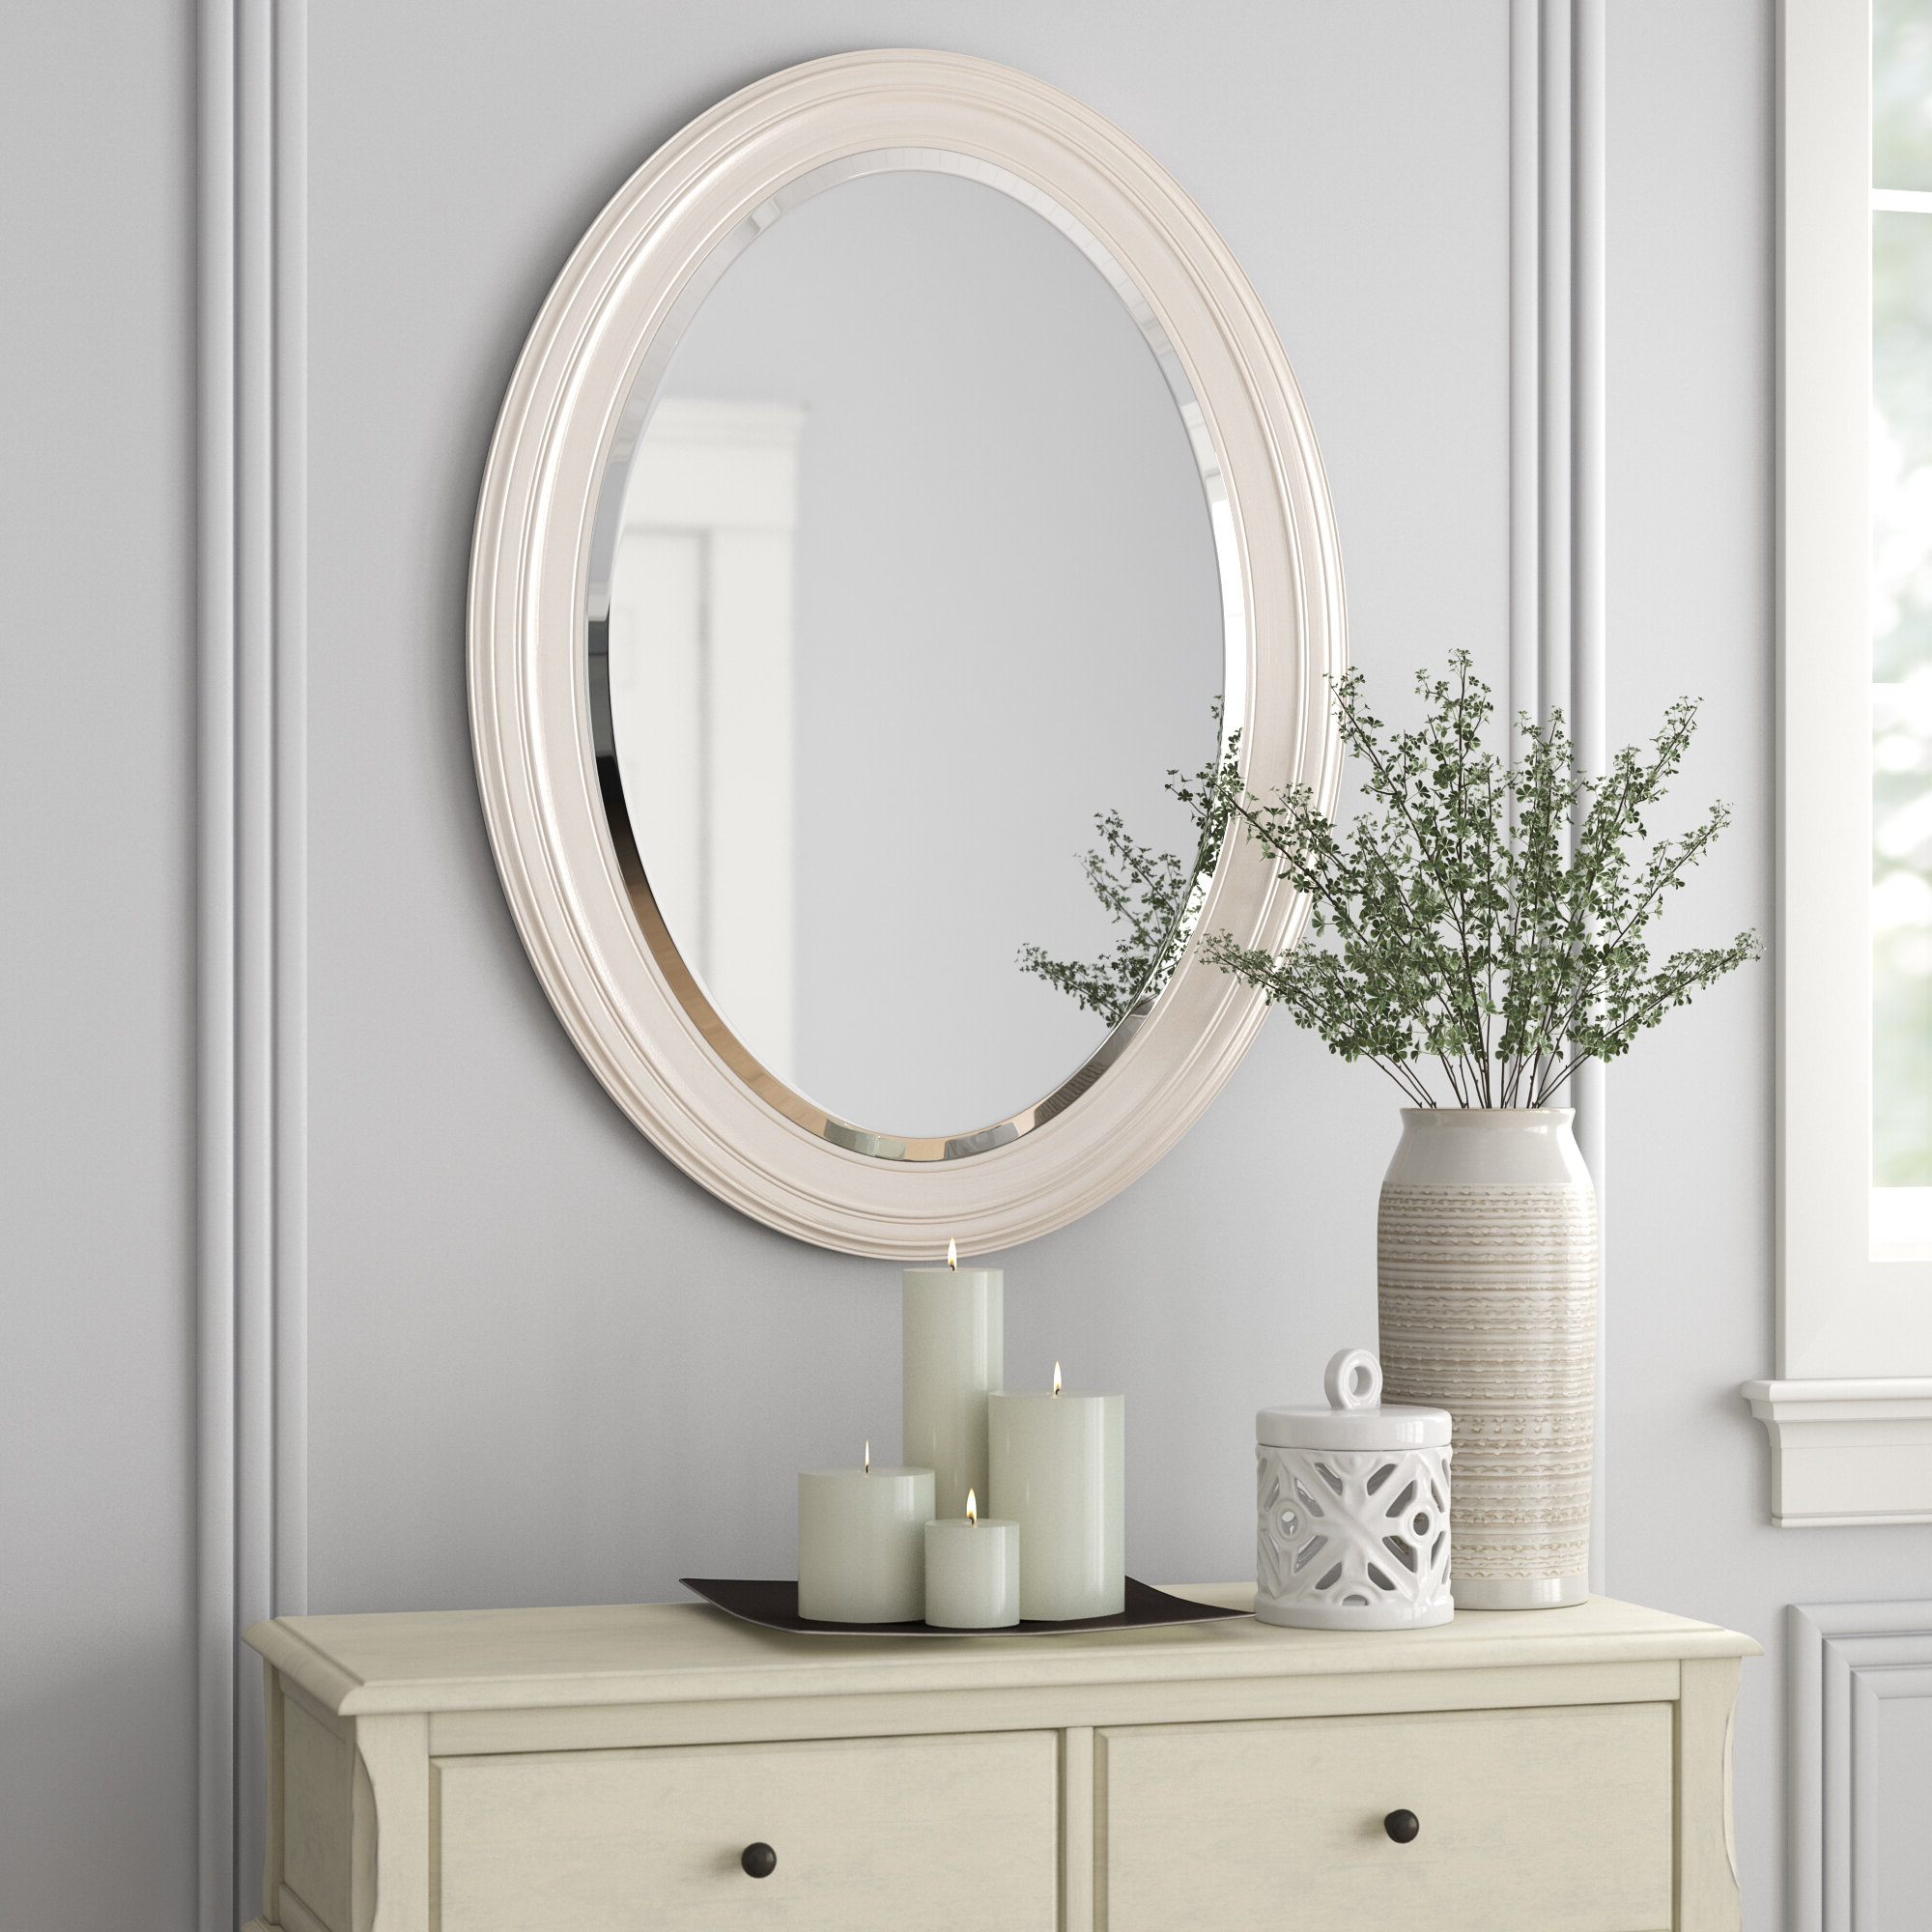 Recent Burnes Oval Traditional Wall Mirrors Intended For Pfister Oval Wood Wall Mirror (View 7 of 20)